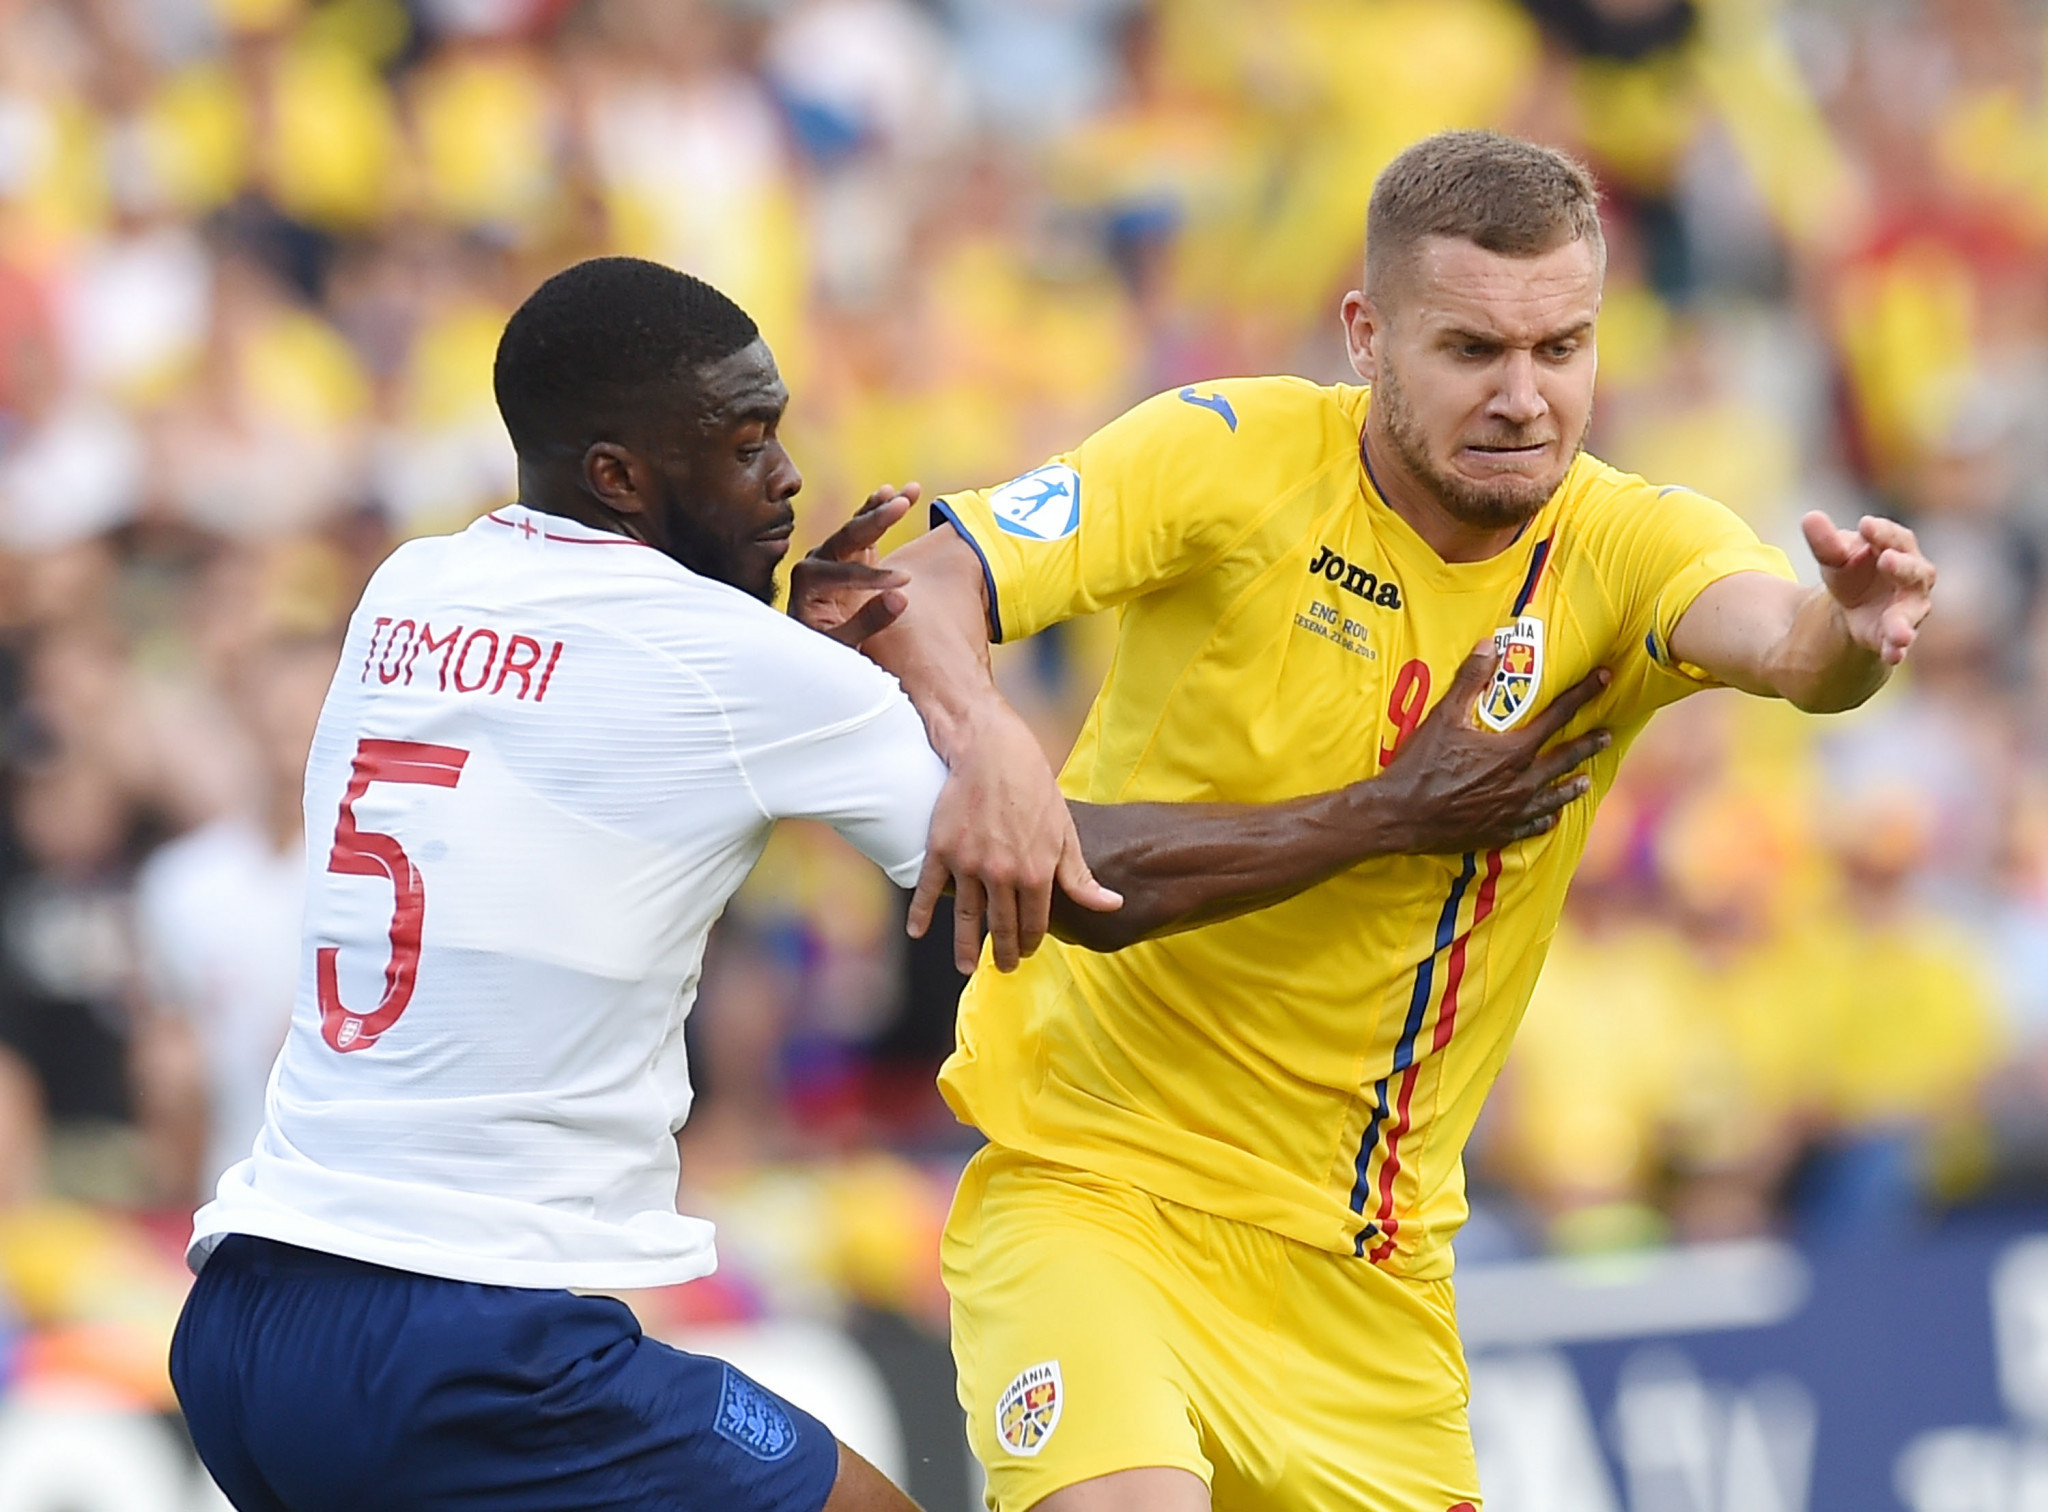 Romania's victory saw England crash out of the tournament ©Getty Images